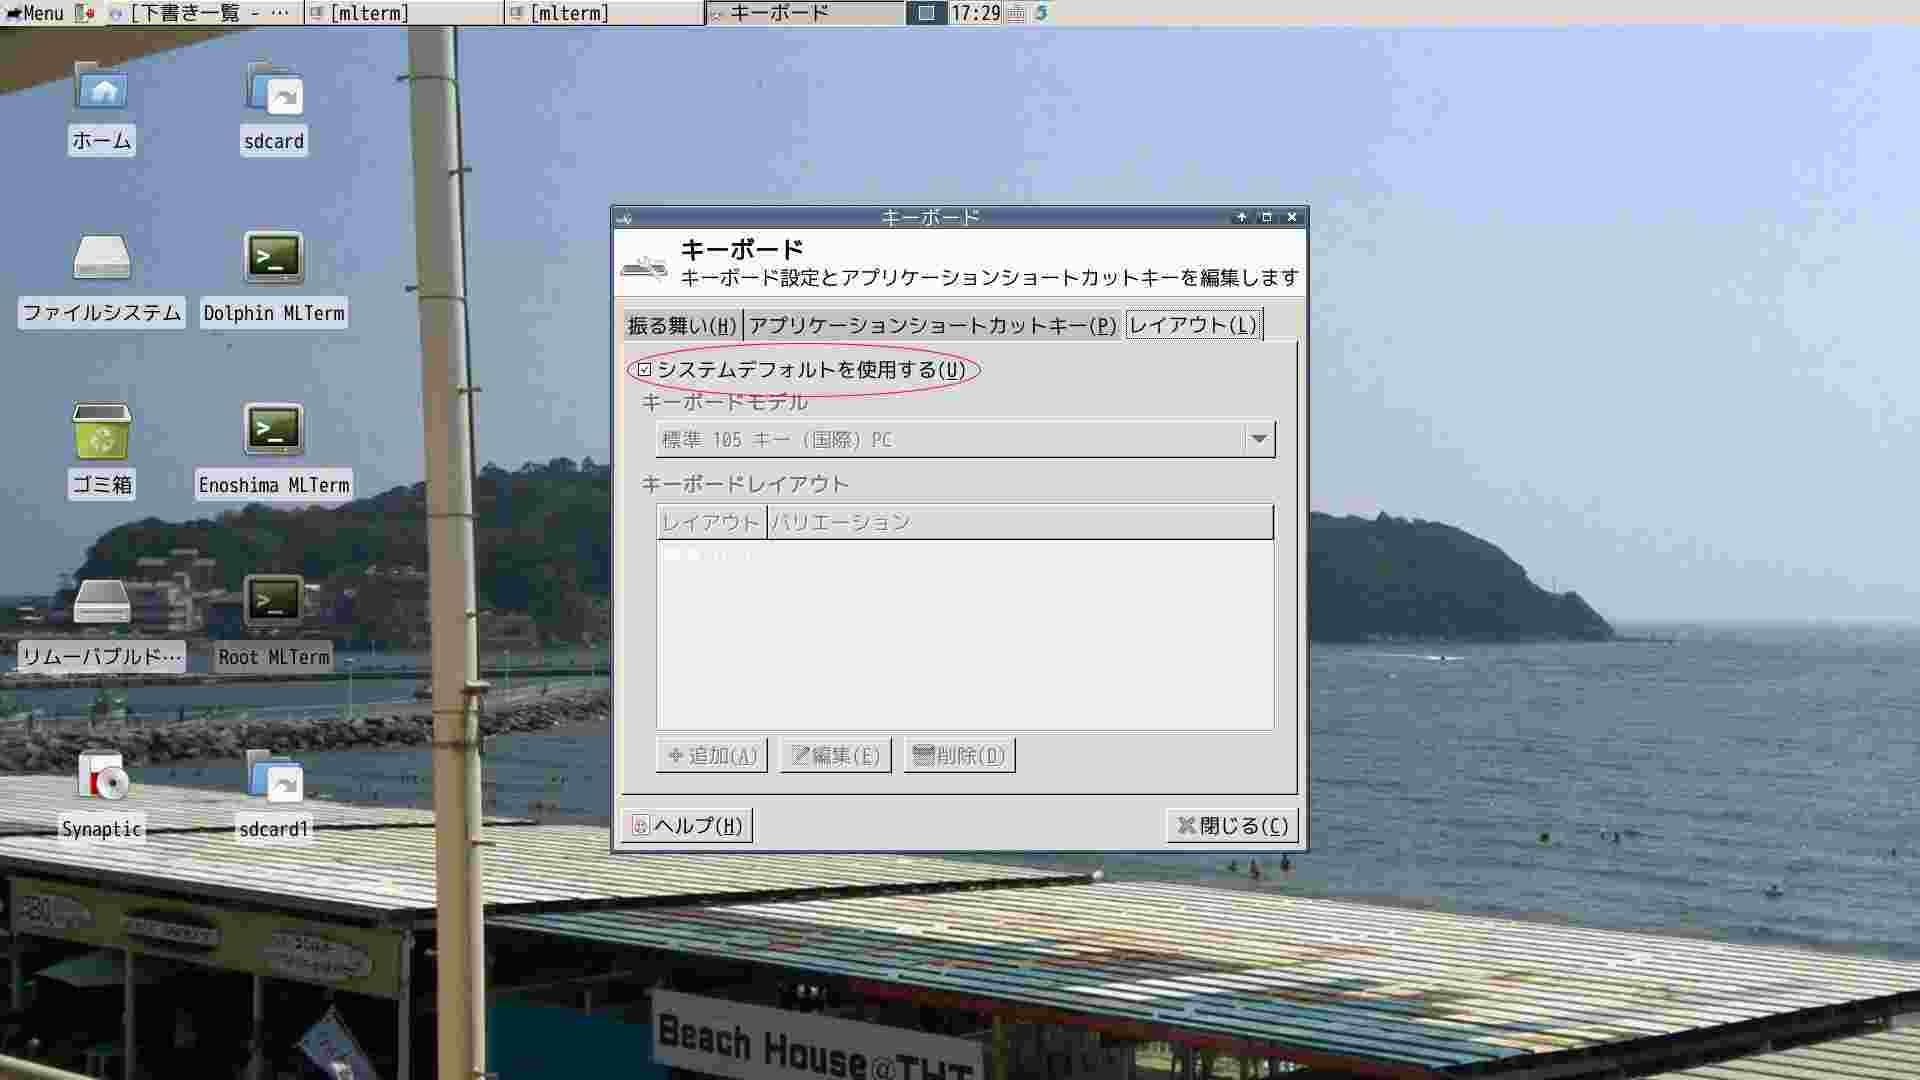 (keyboard panel of xfce)